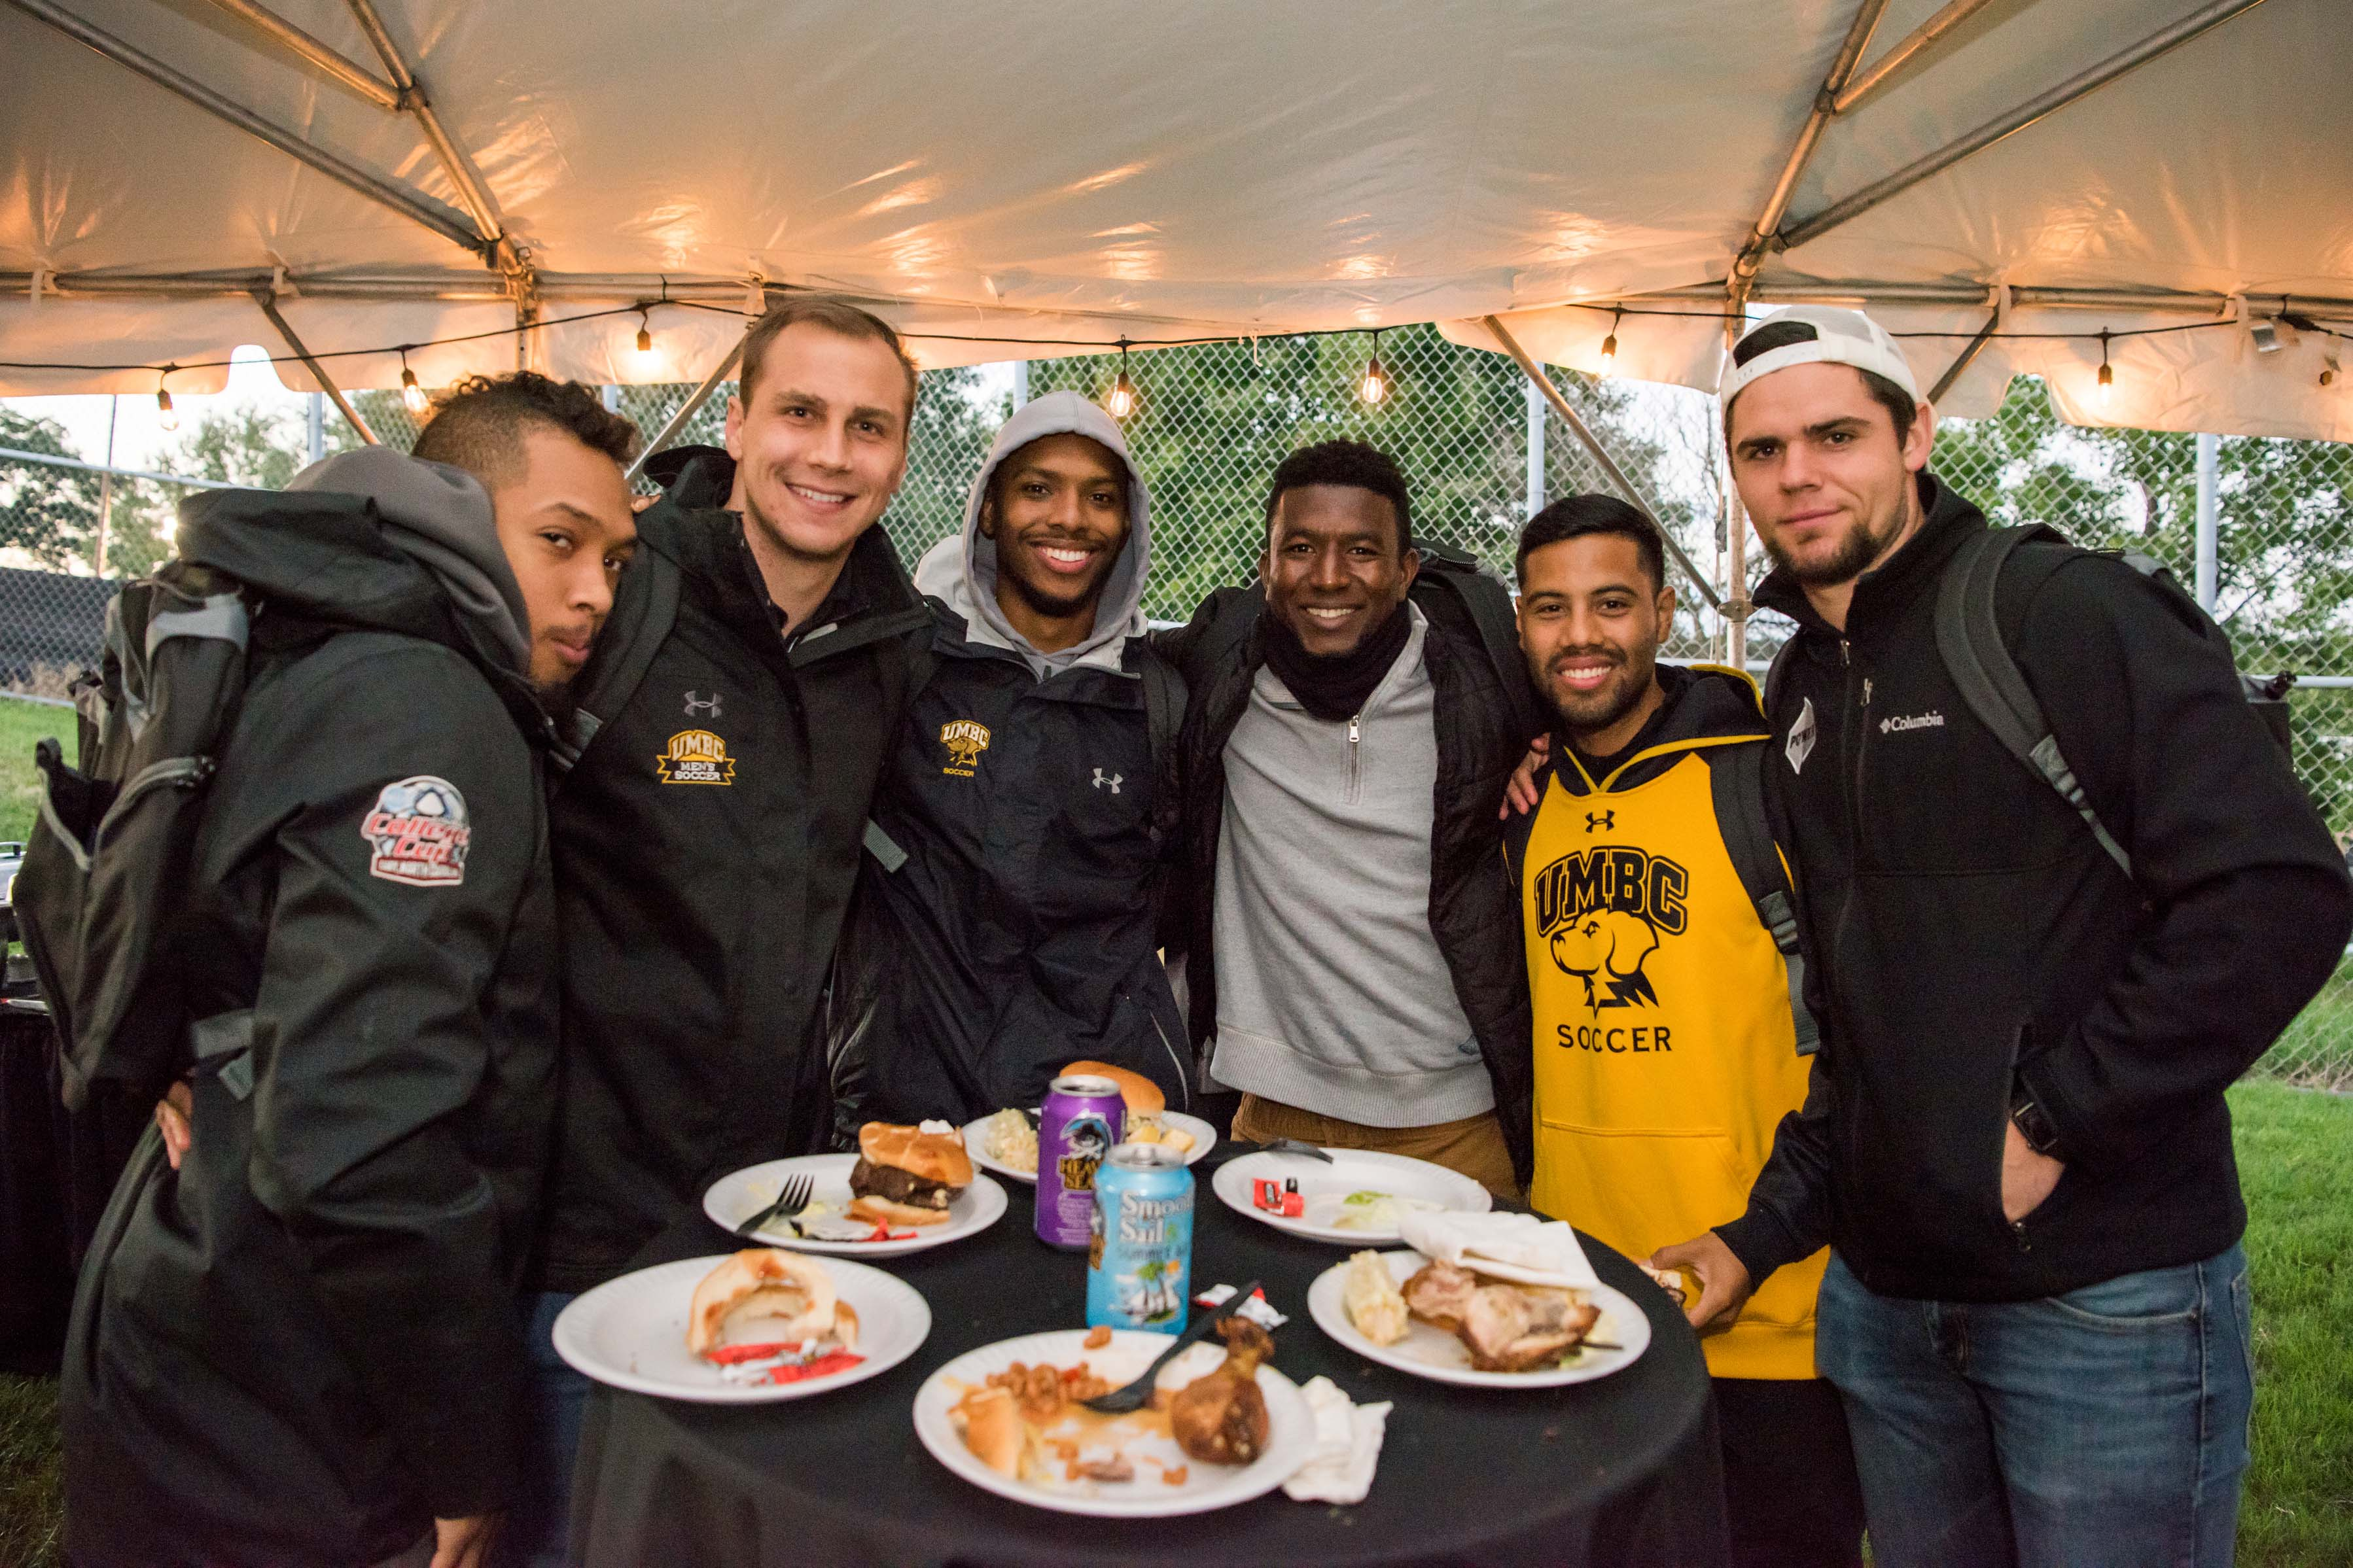 Group of guys pose behind black circular table with food on it